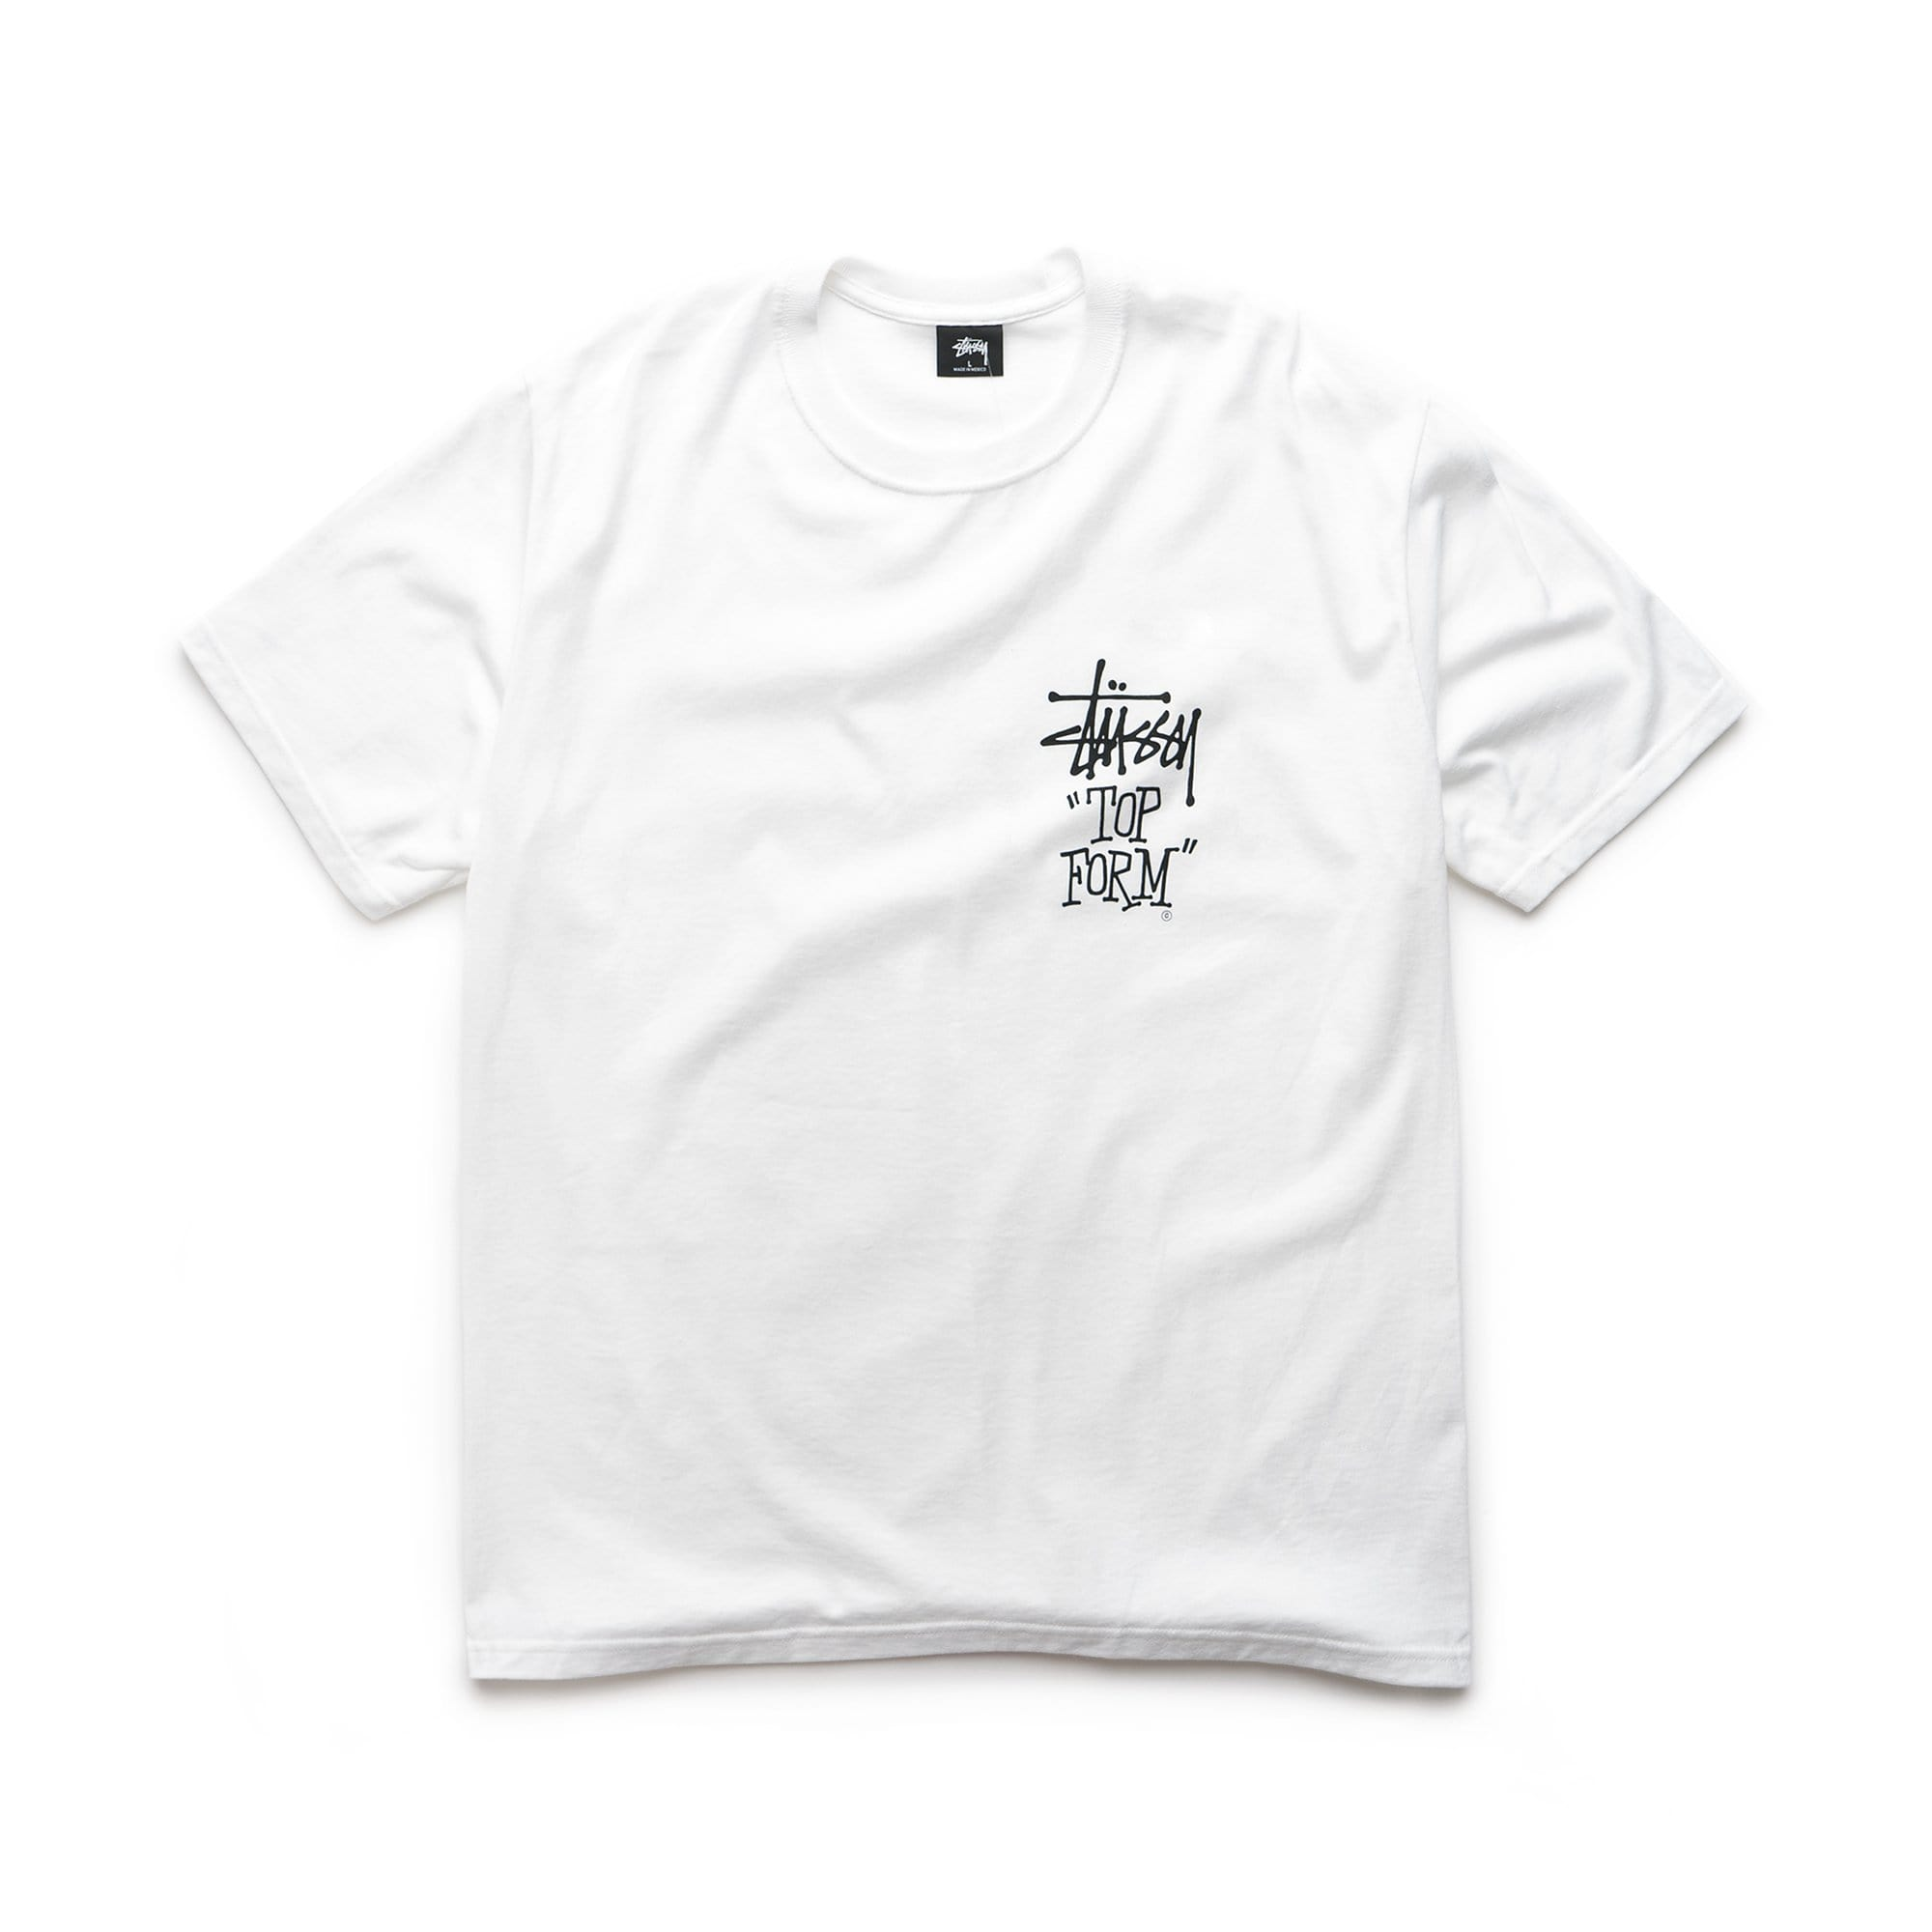 Stüssy T-Shirts Top Form Tee